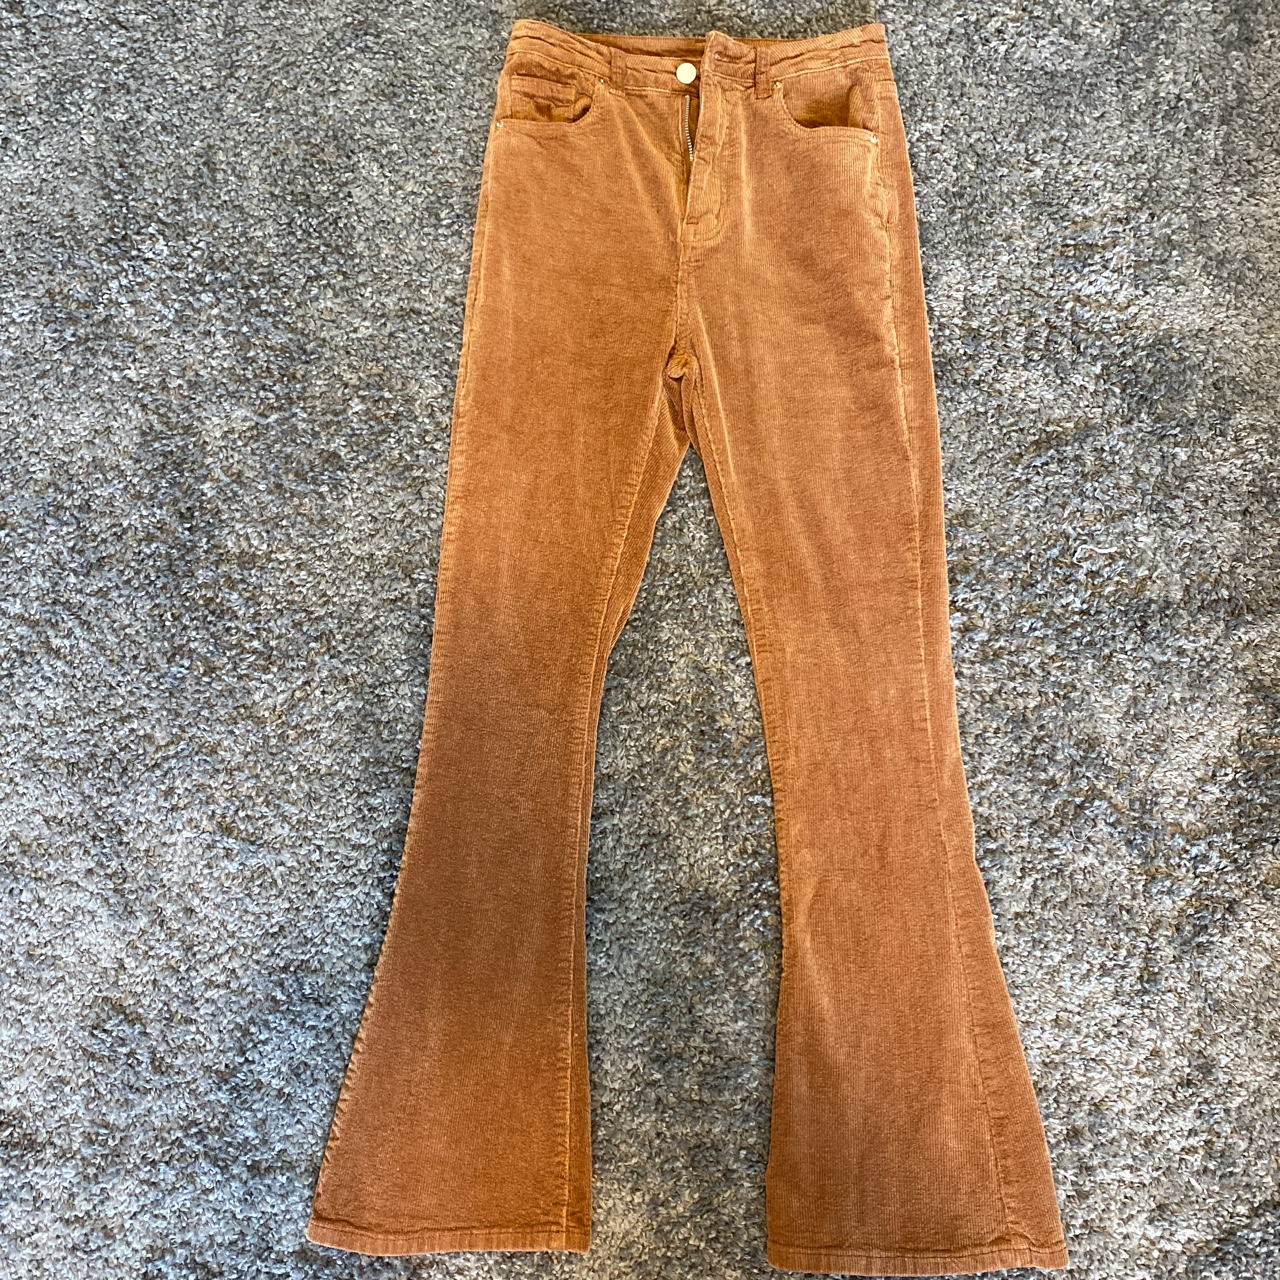 Product Image 1 - Thrifted brown corduroy pants. Looks